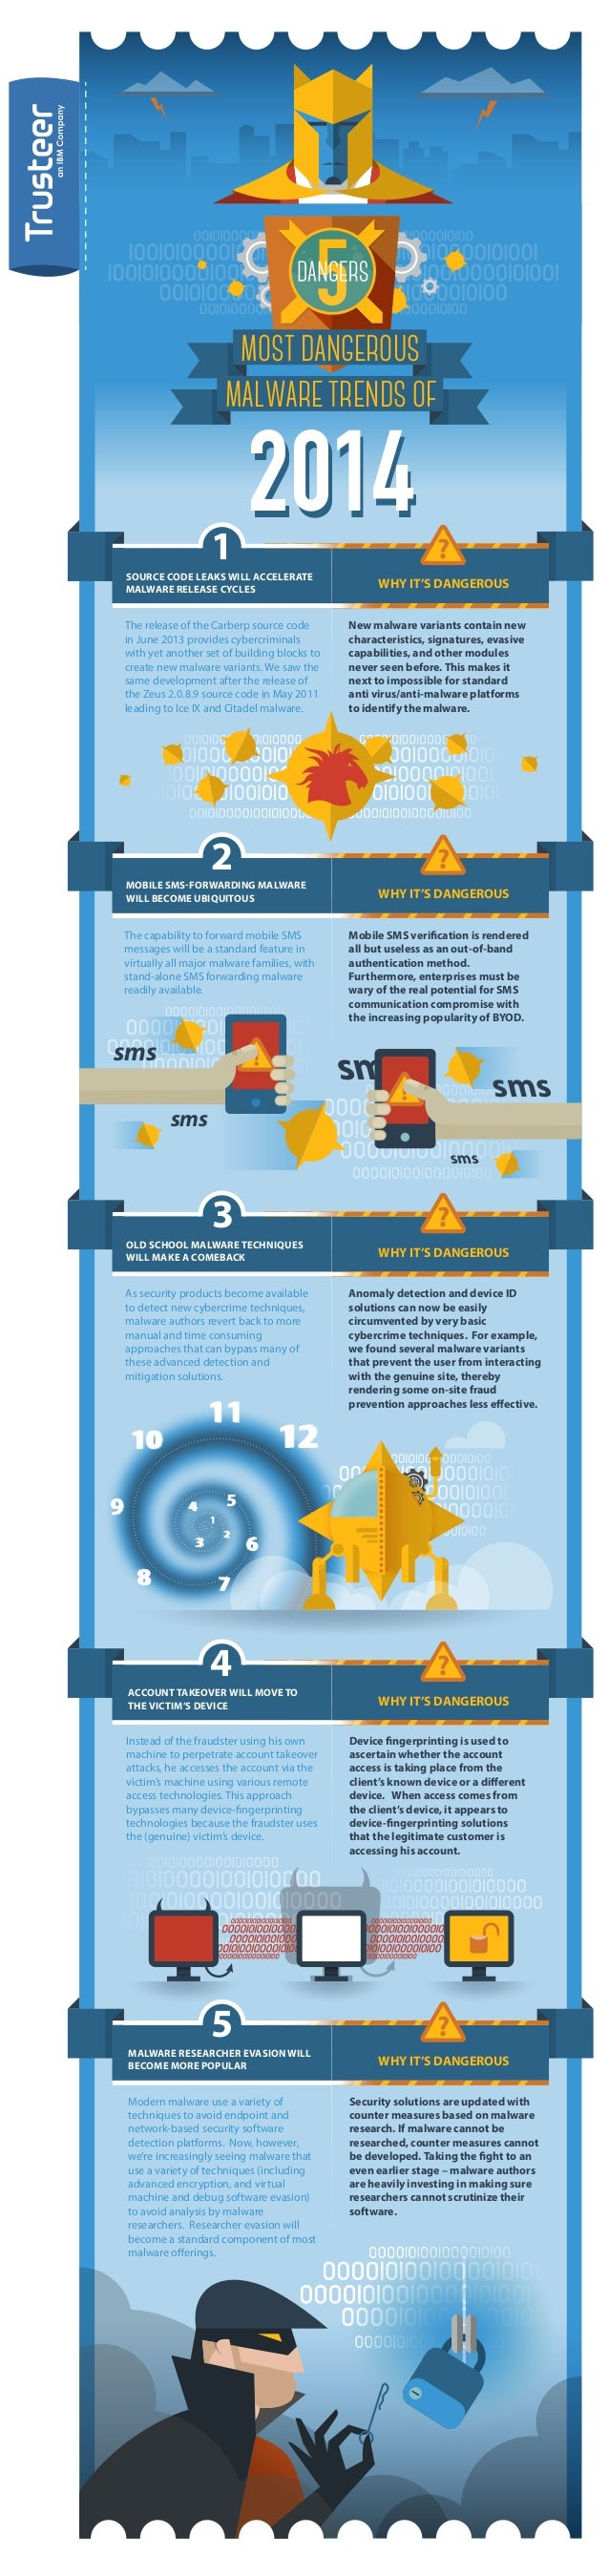 INFOGRAPHIC: Top Most Dangerous Malware Trends for 2014